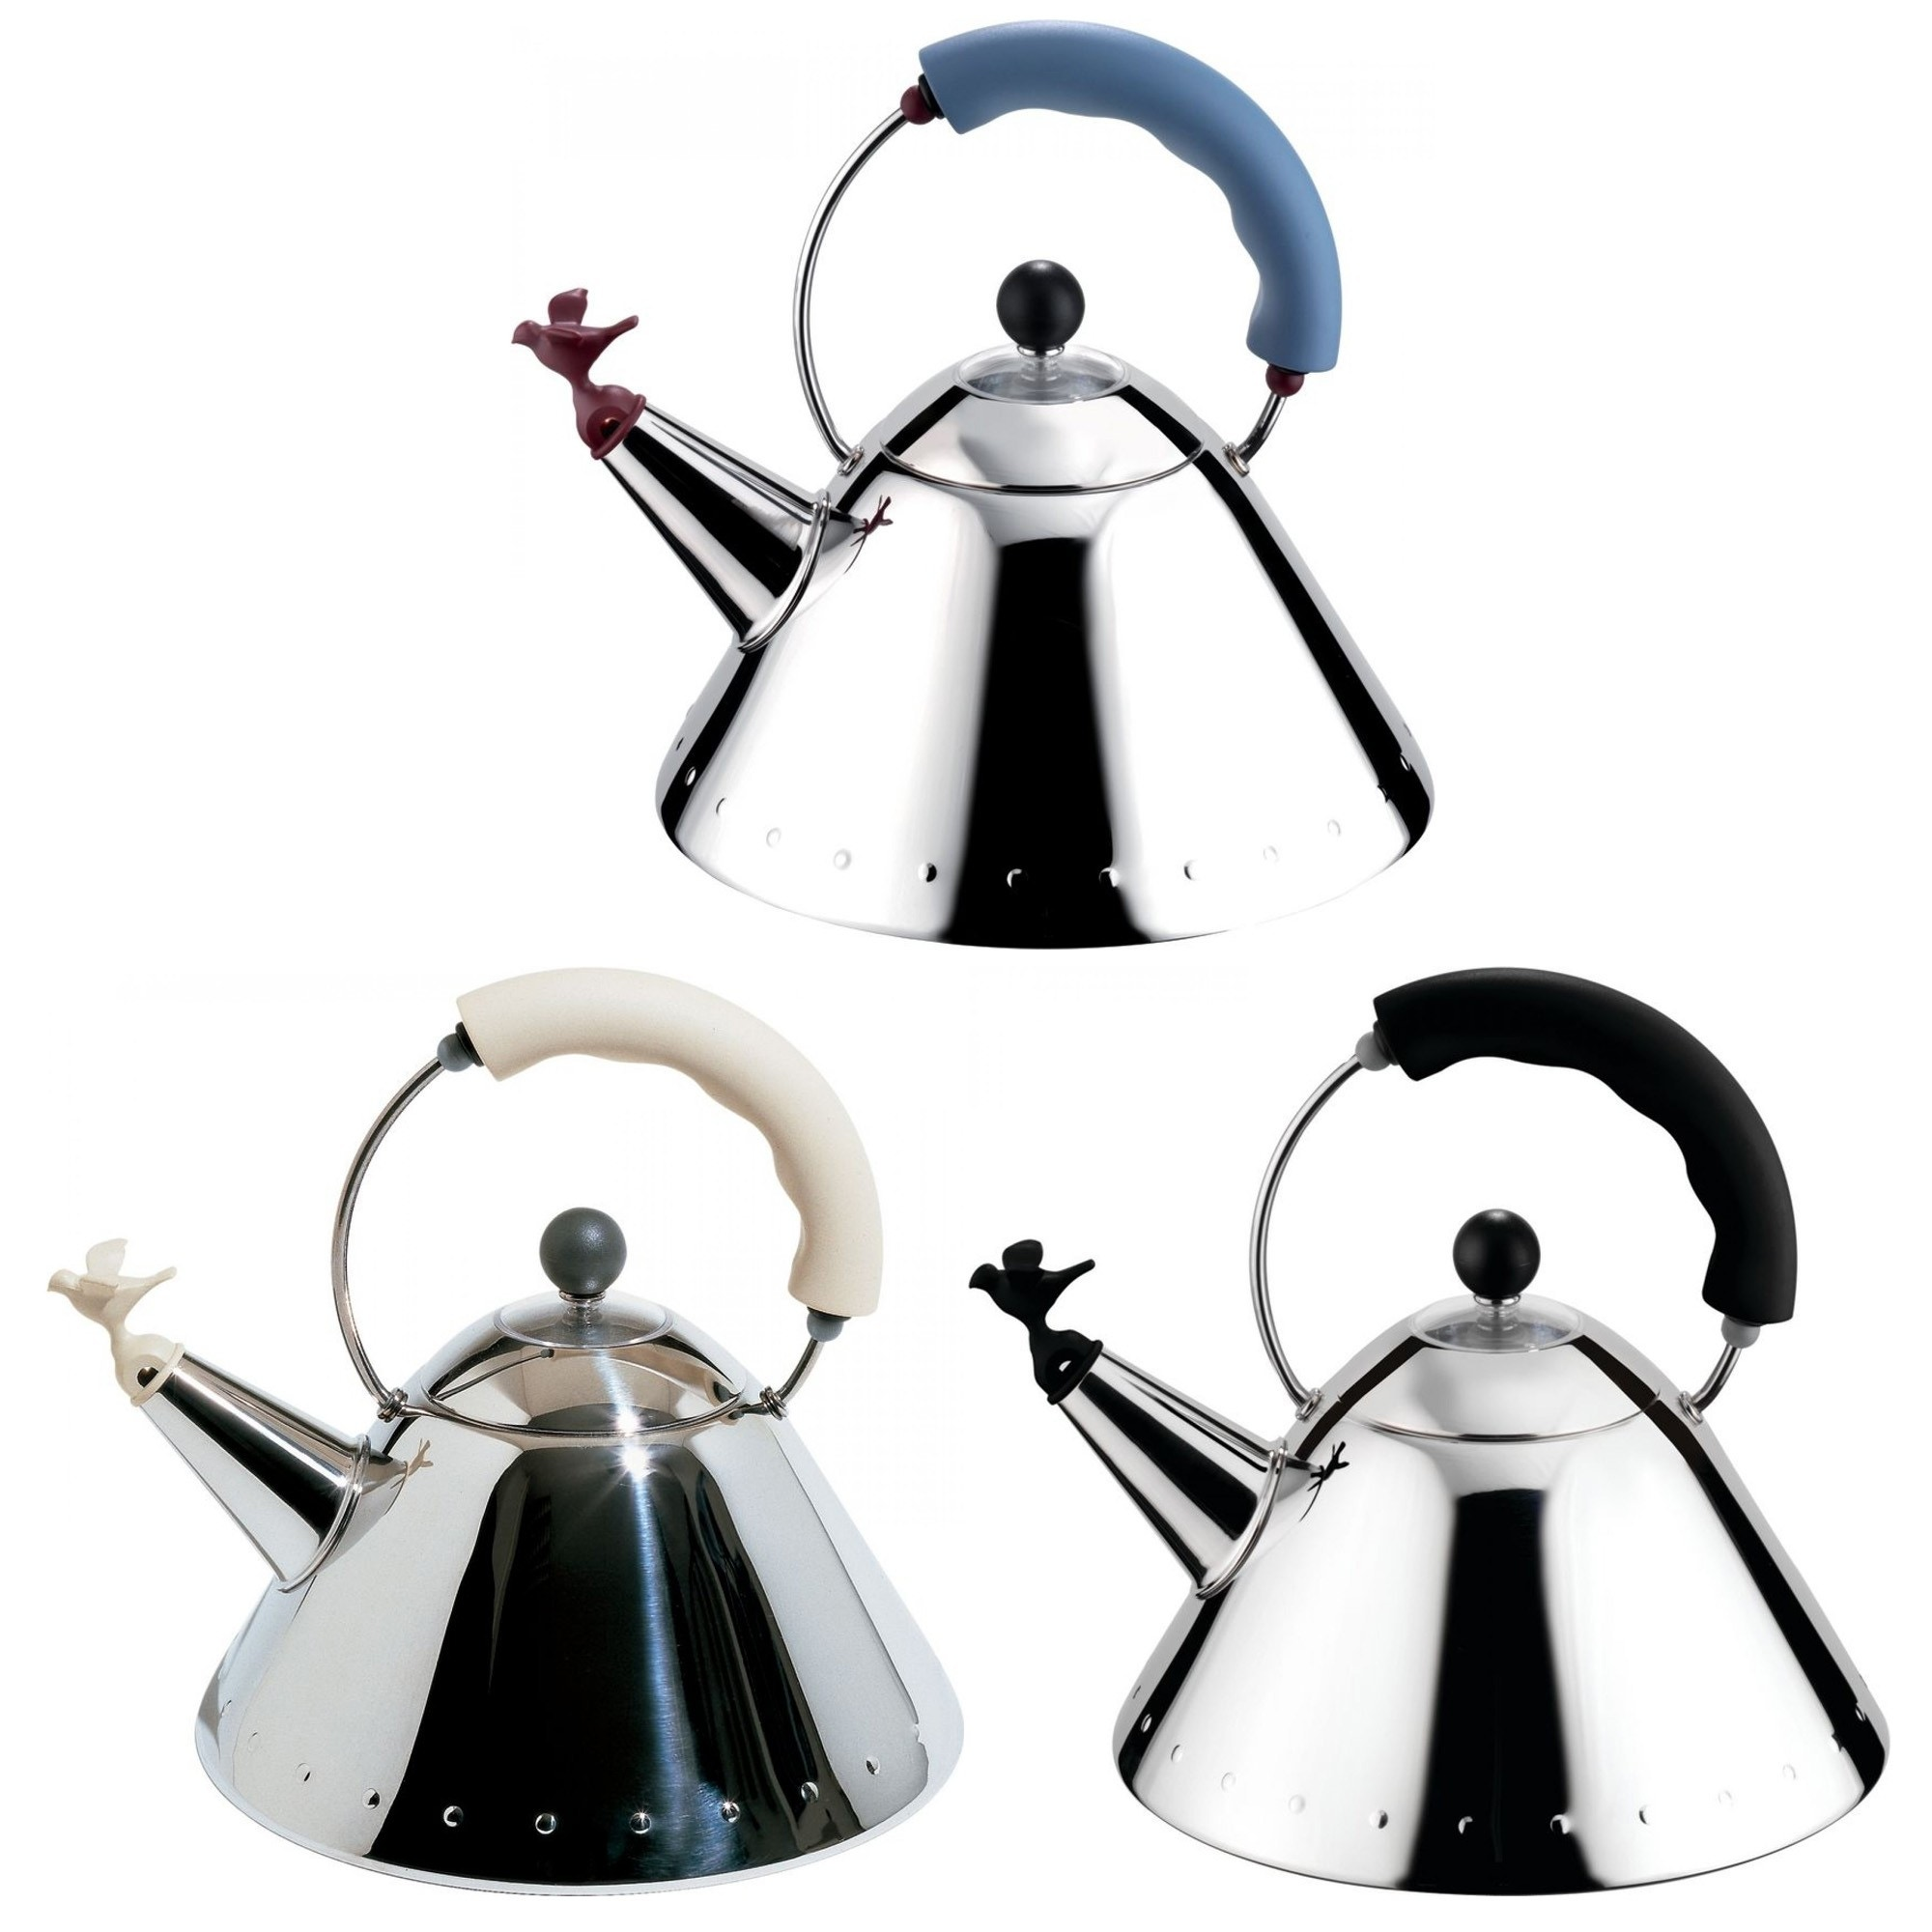 alessi michael graves kettle with small birdshaped whistle  gr  - alessi michael graves kettle with small birdshaped whistle